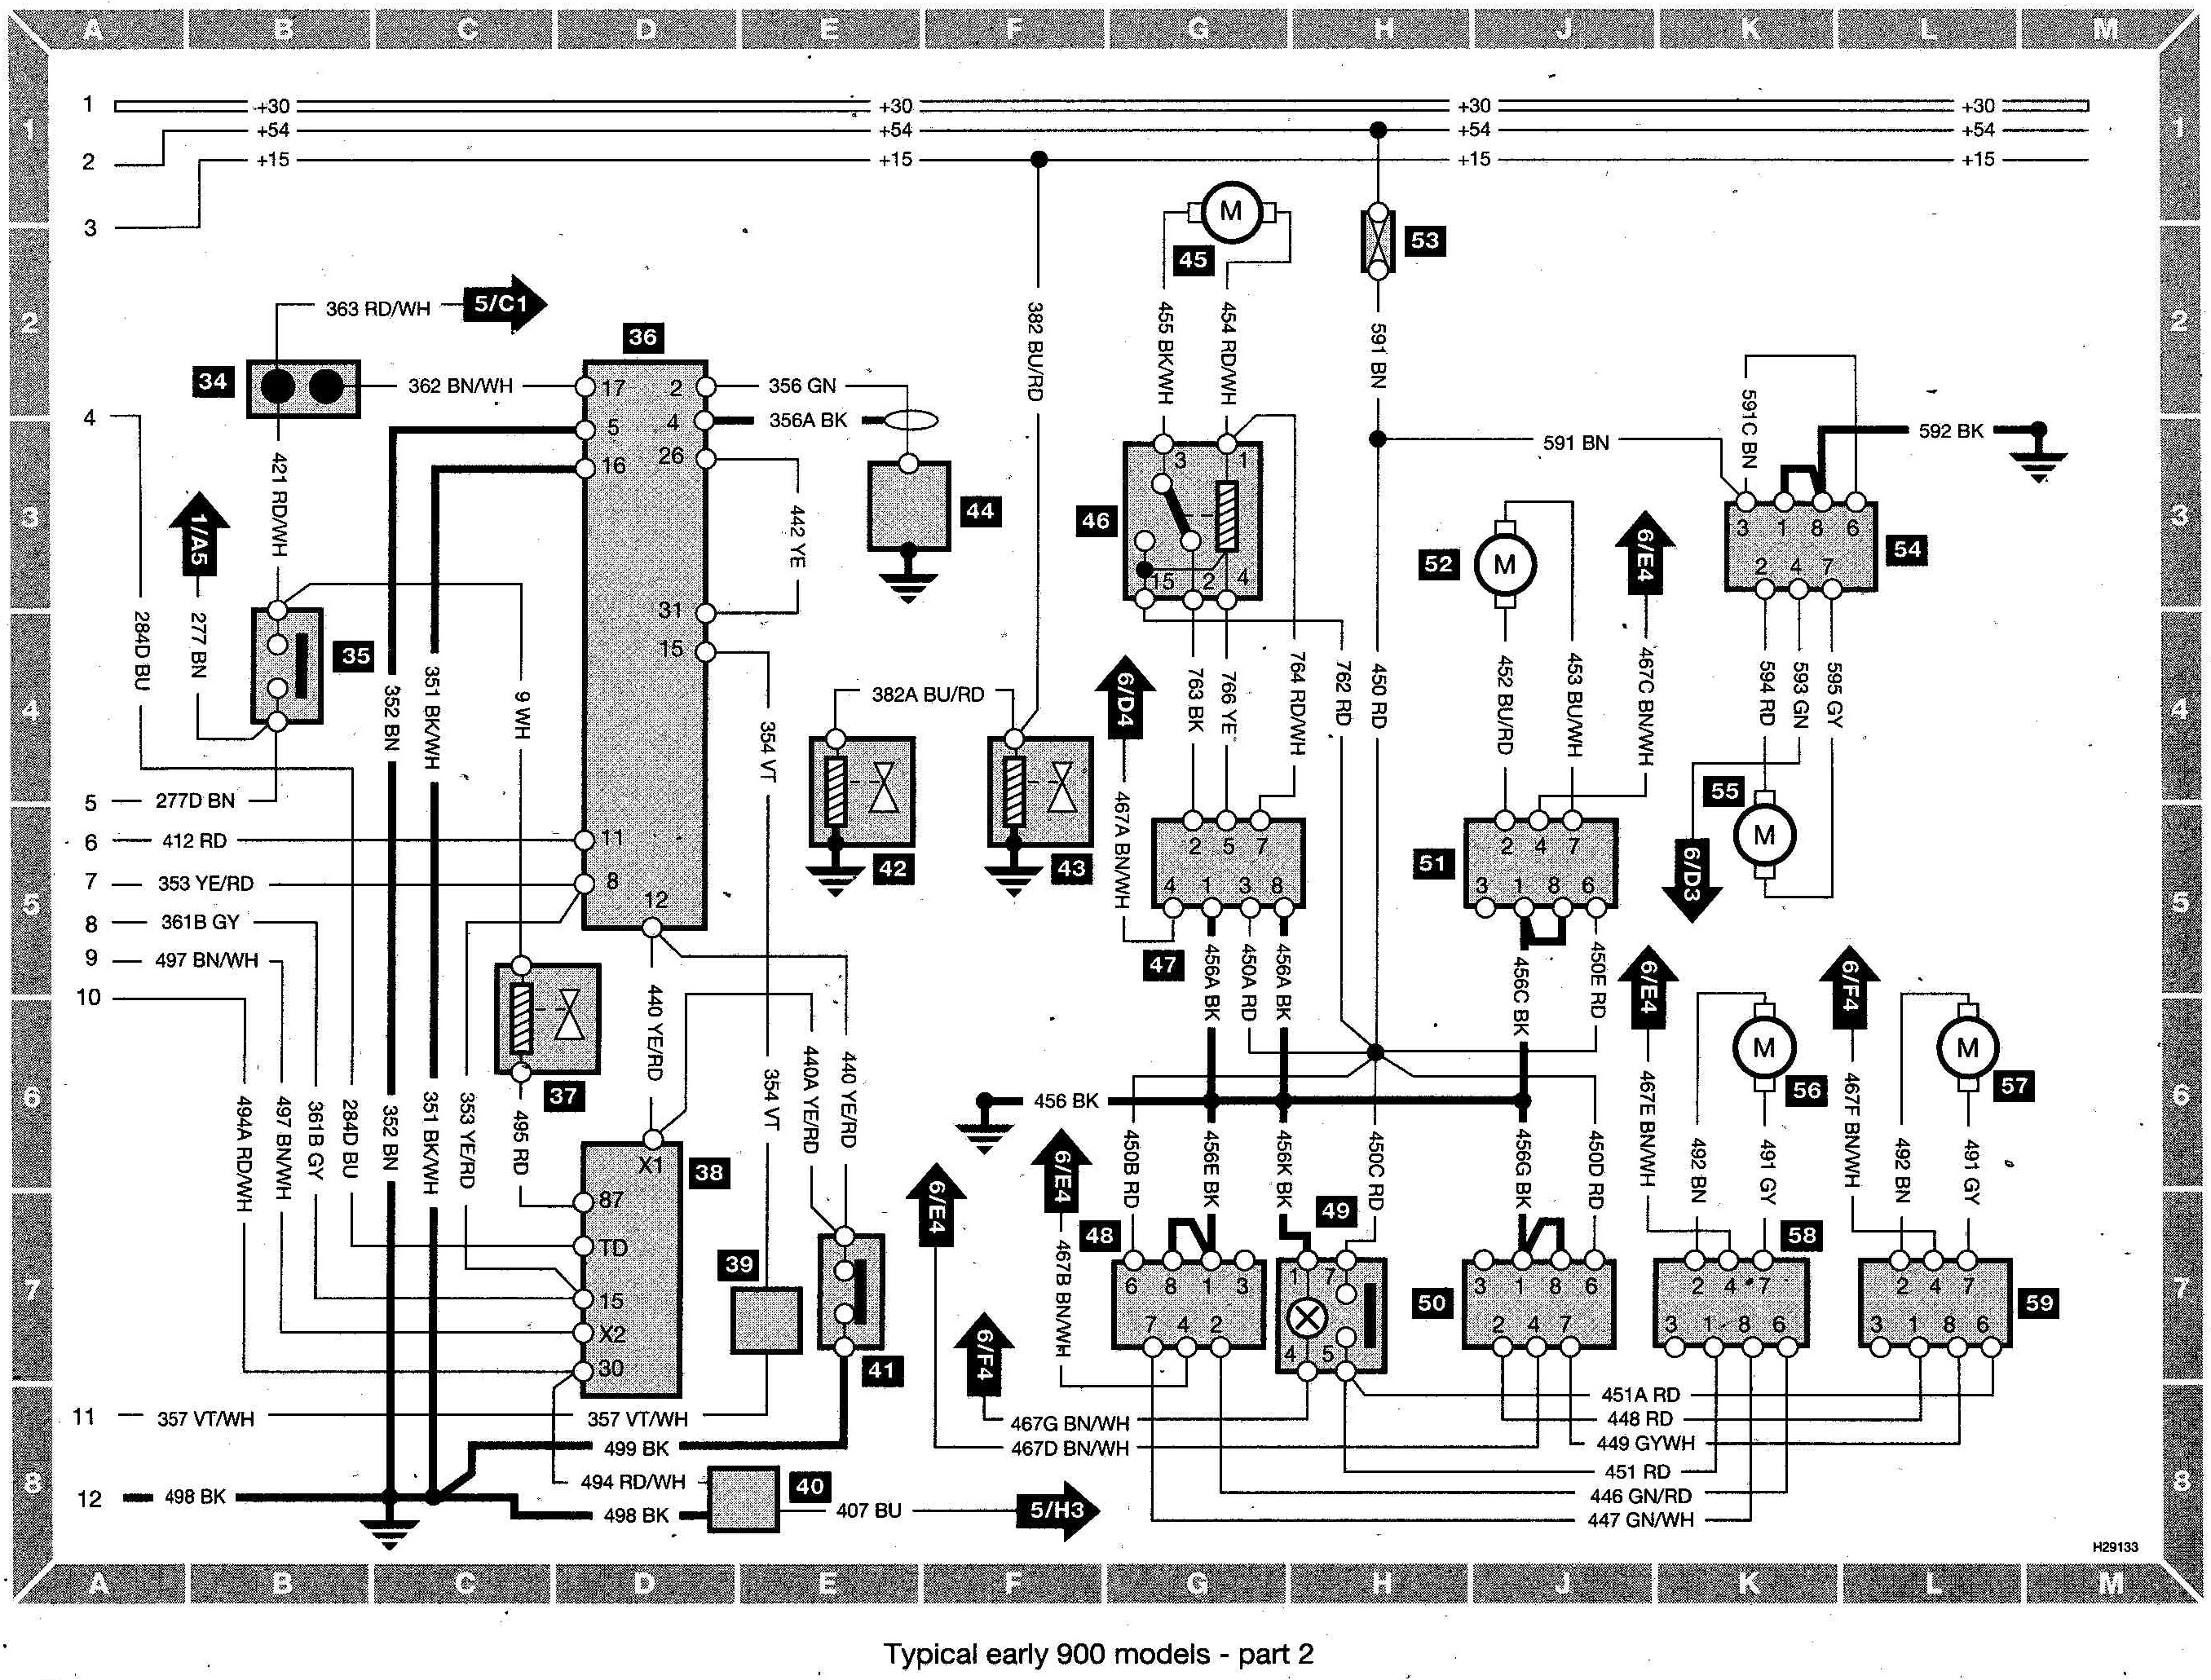 saab wiring schematics saab 9 3 radiator fan wiring schematics index of /saab/saab 900 wiring diagram (early models)